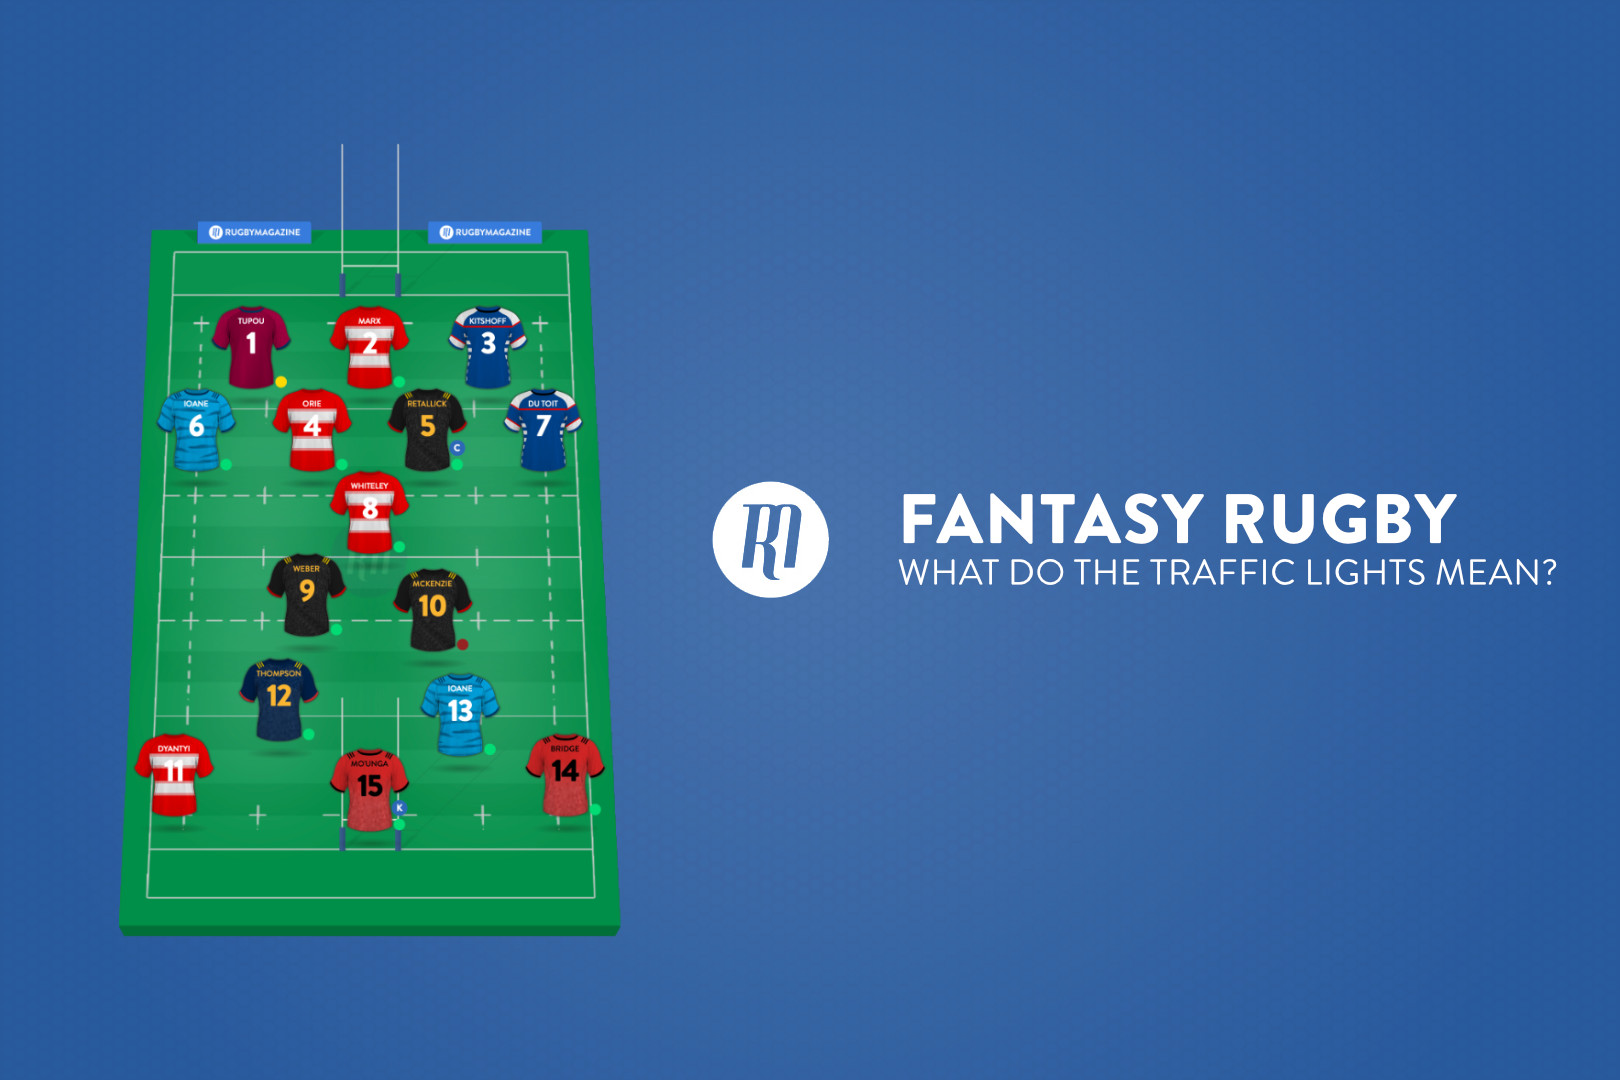 Fantasy Rugby: What do the traffic lights mean?